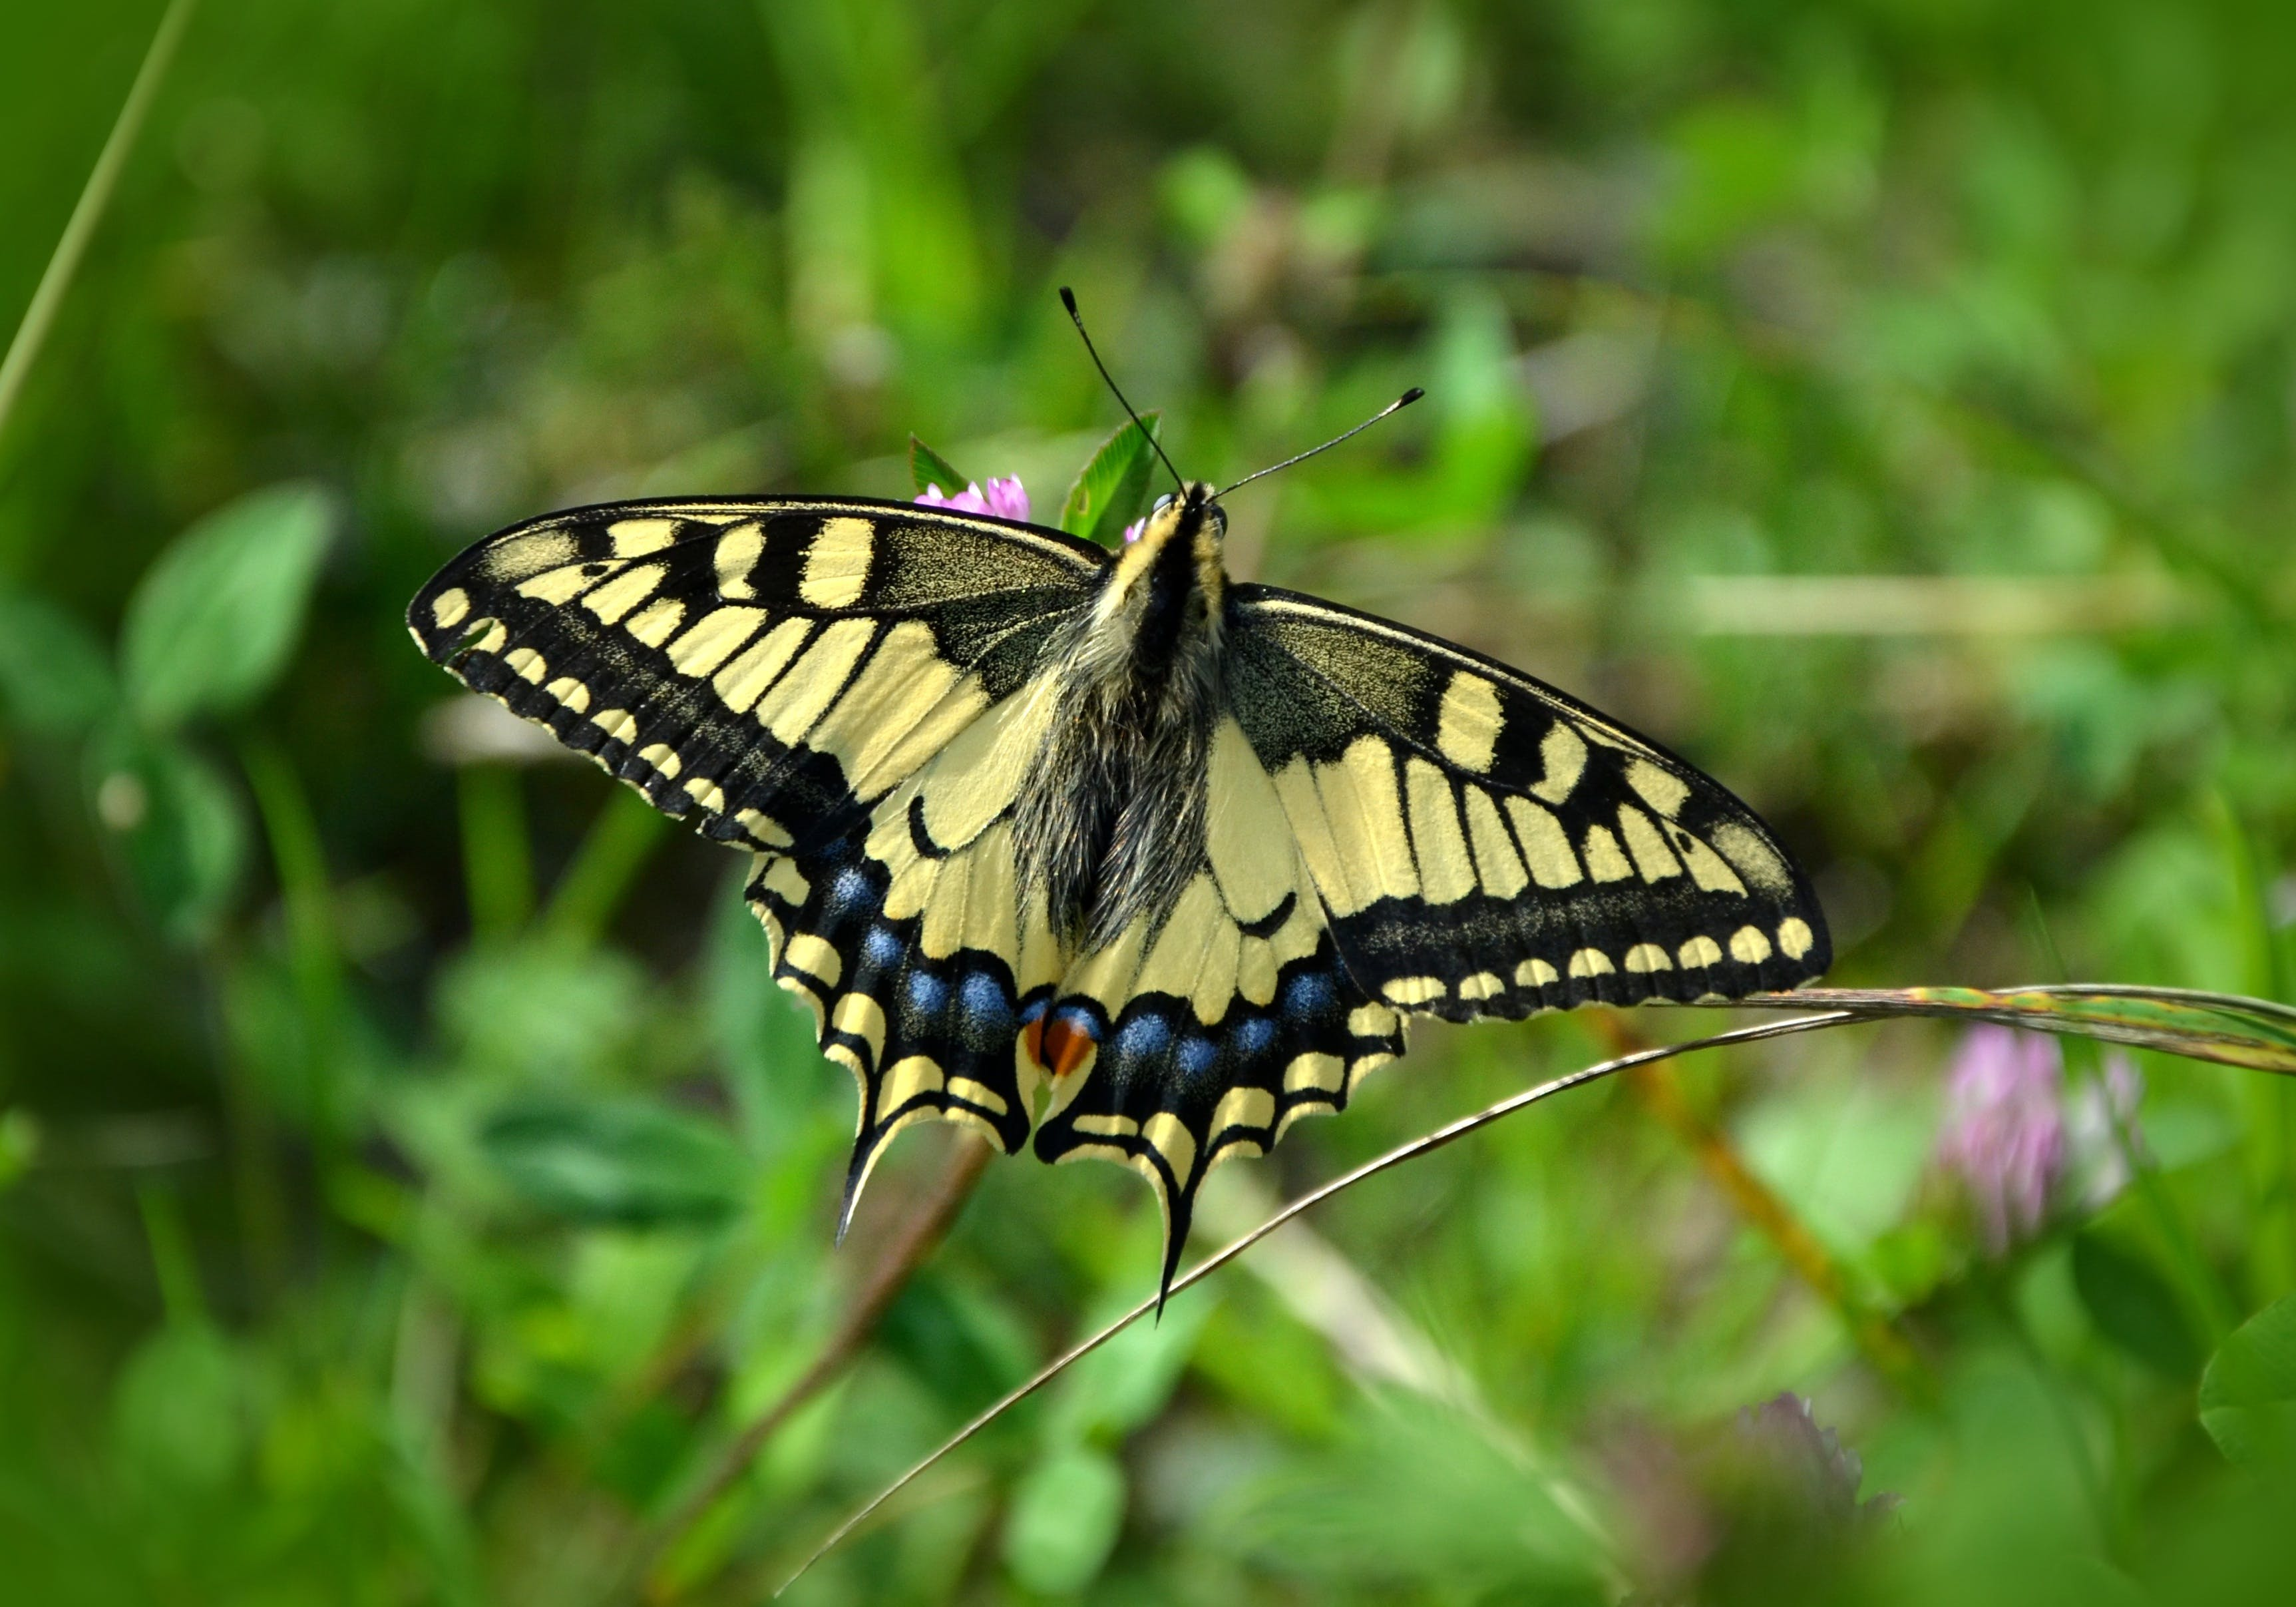 Eastern Tiger Swallowtail Butterfly Selective Focus Photography